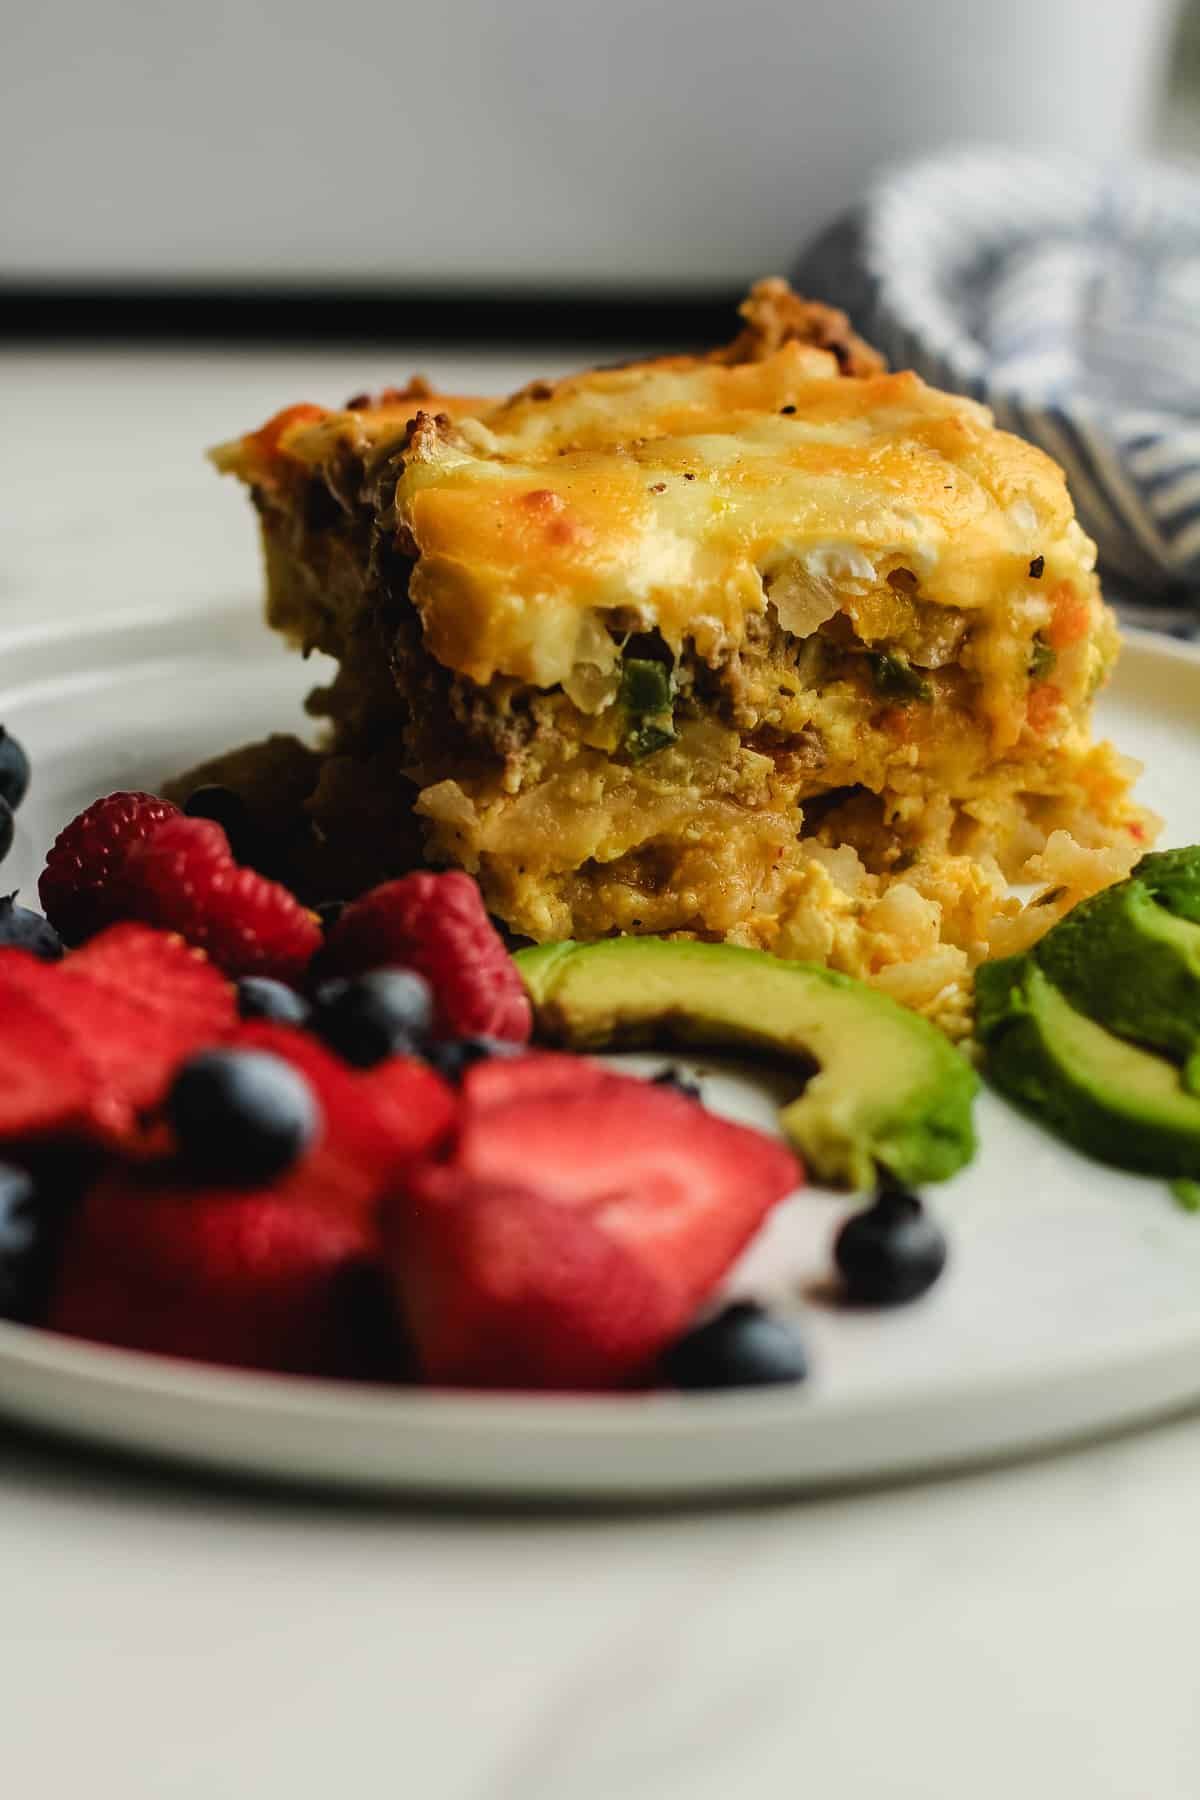 Side shot of a square of breakfast casserole on a plate with avocado and fruit.